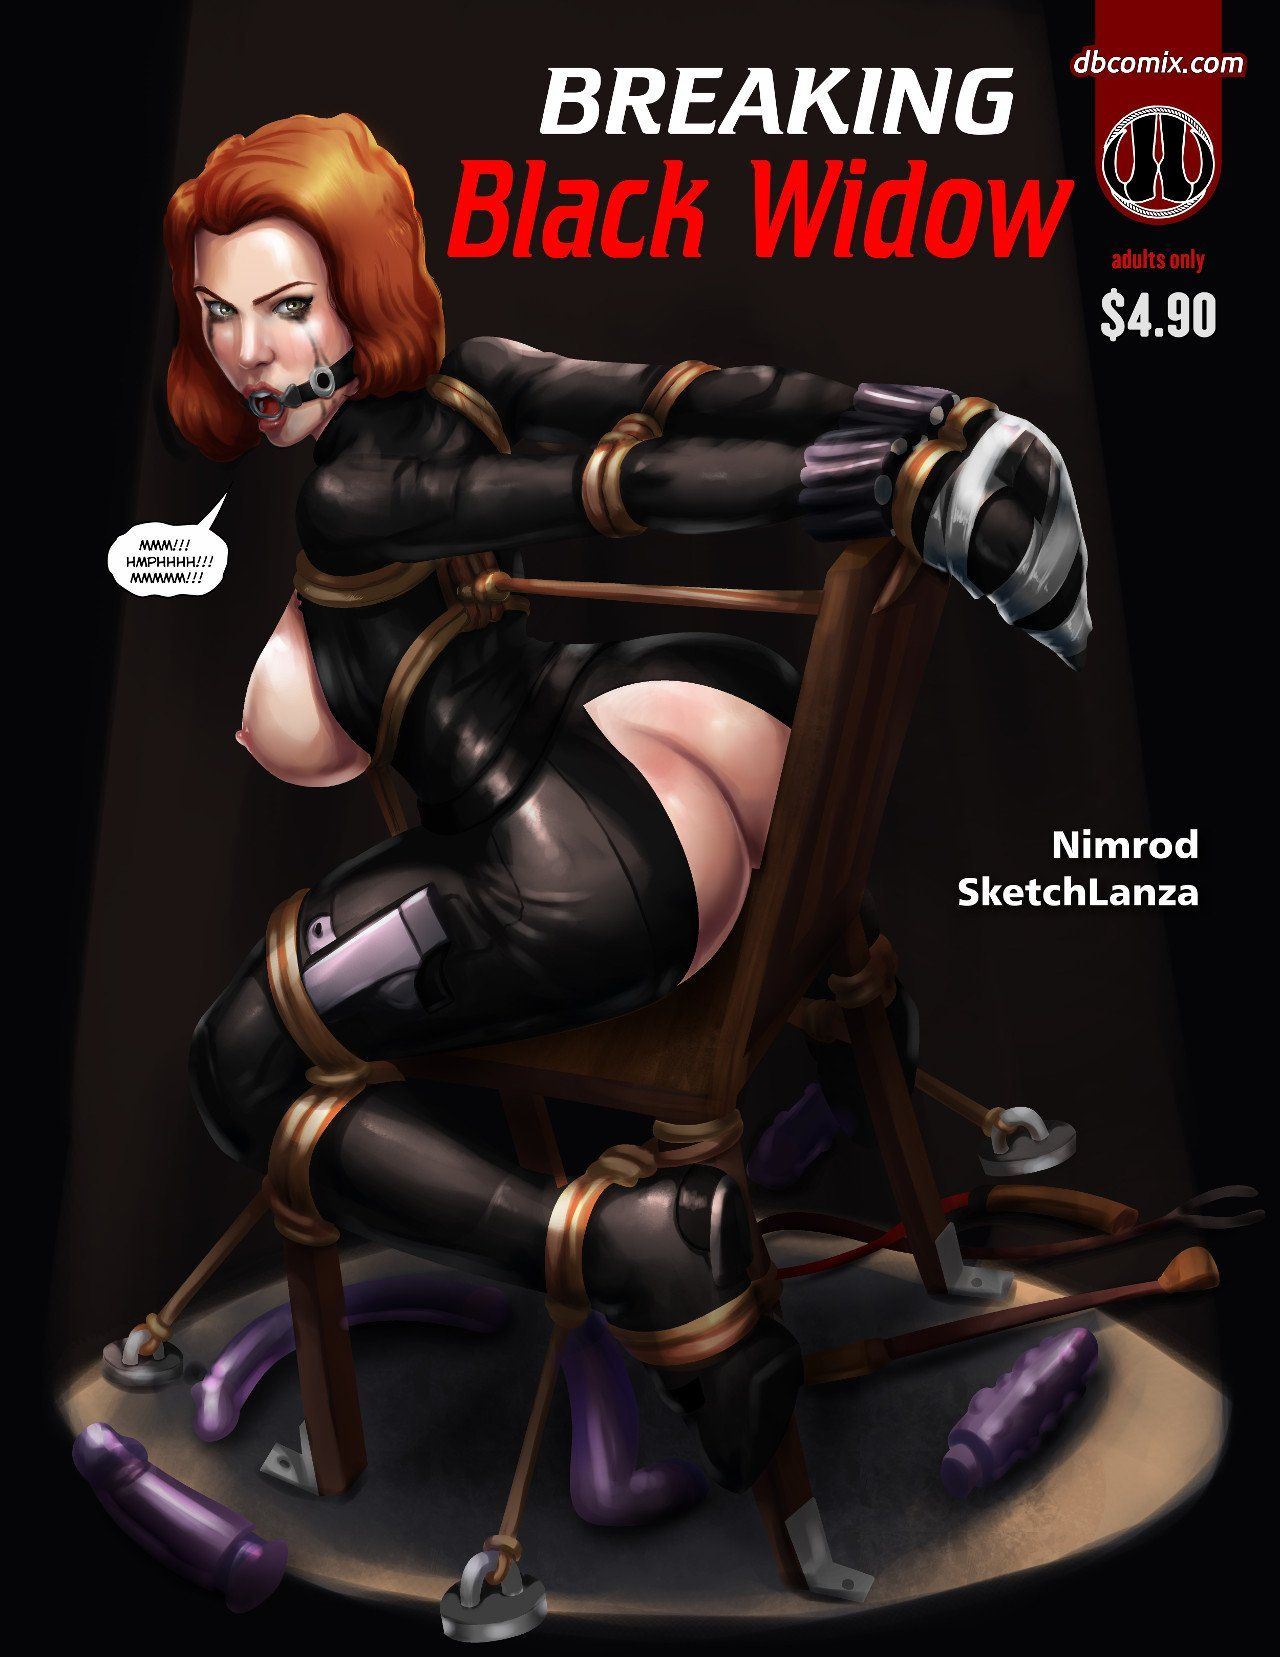 Black Widow Porn